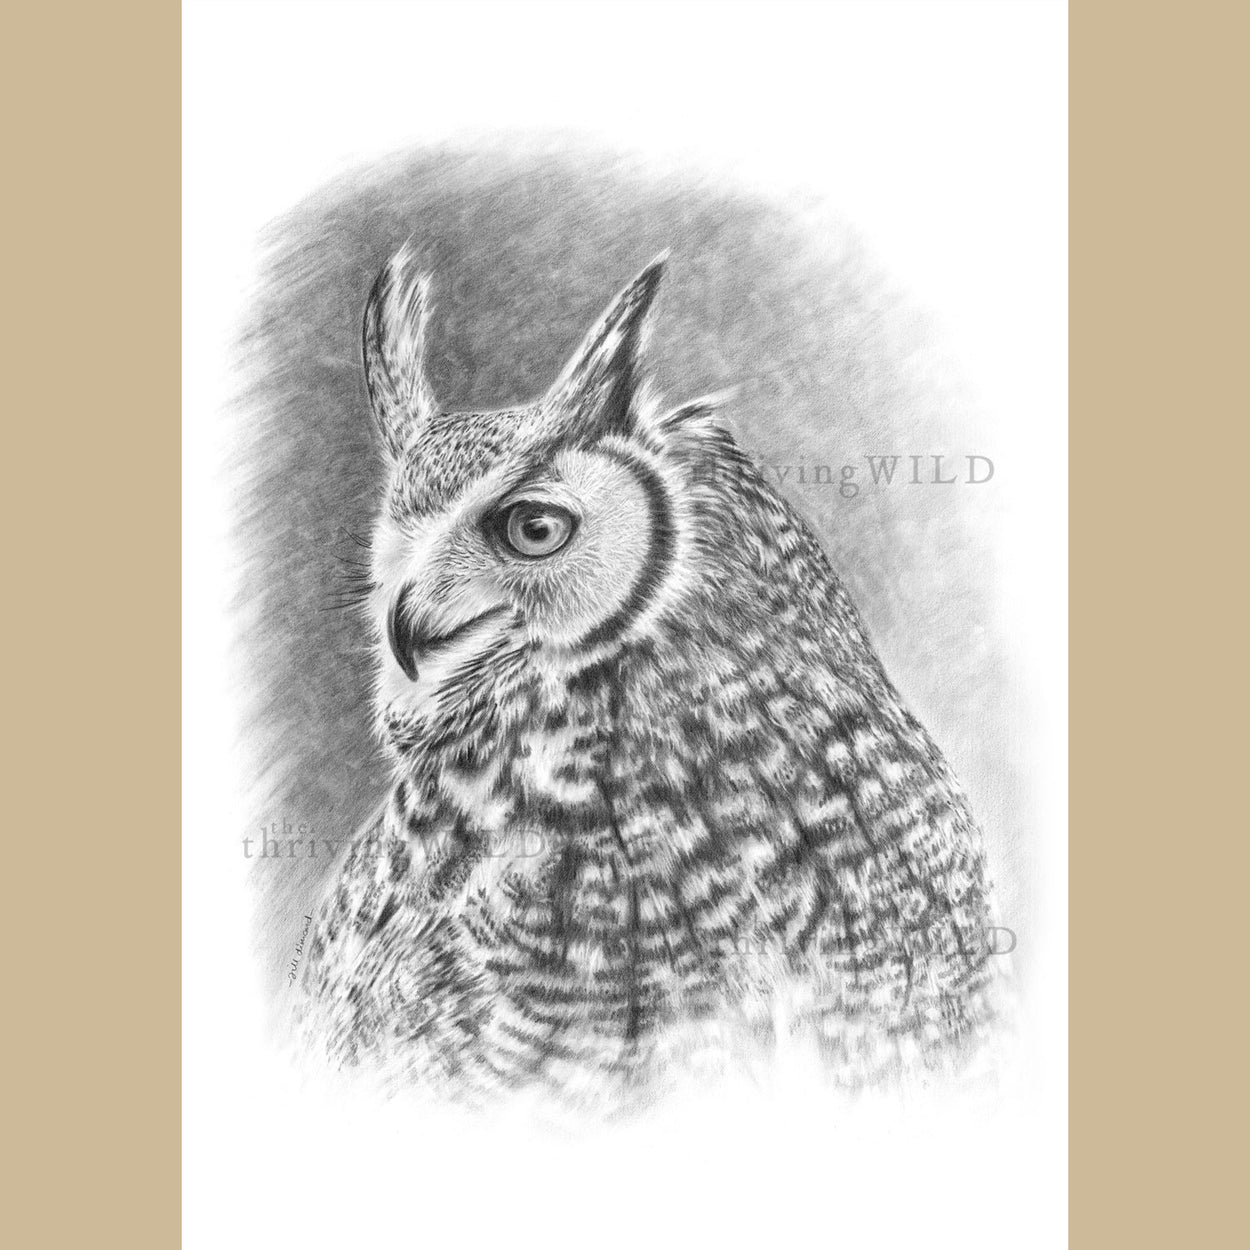 Bubo Virginianus Pencil Drawing Great Horned Owl - The Thriving Wild - Jill Dimond